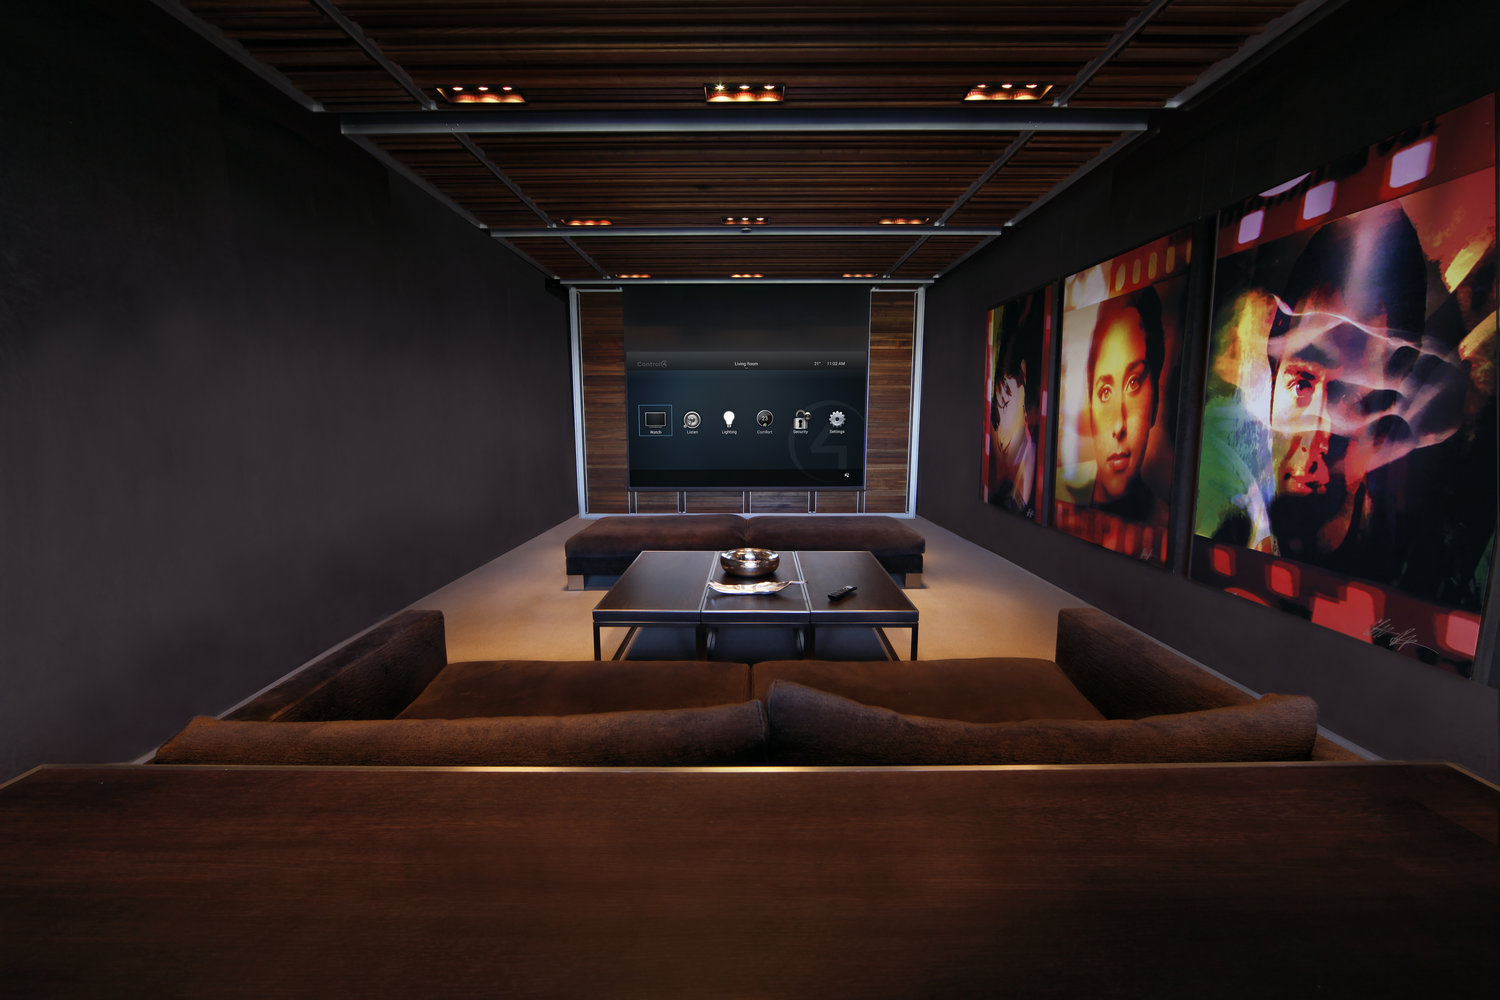 2C Audio Video Home Theater and Home Automations Experts on smart home systems, smart home jacksonville beach, smart home icon, smart home floor plans,